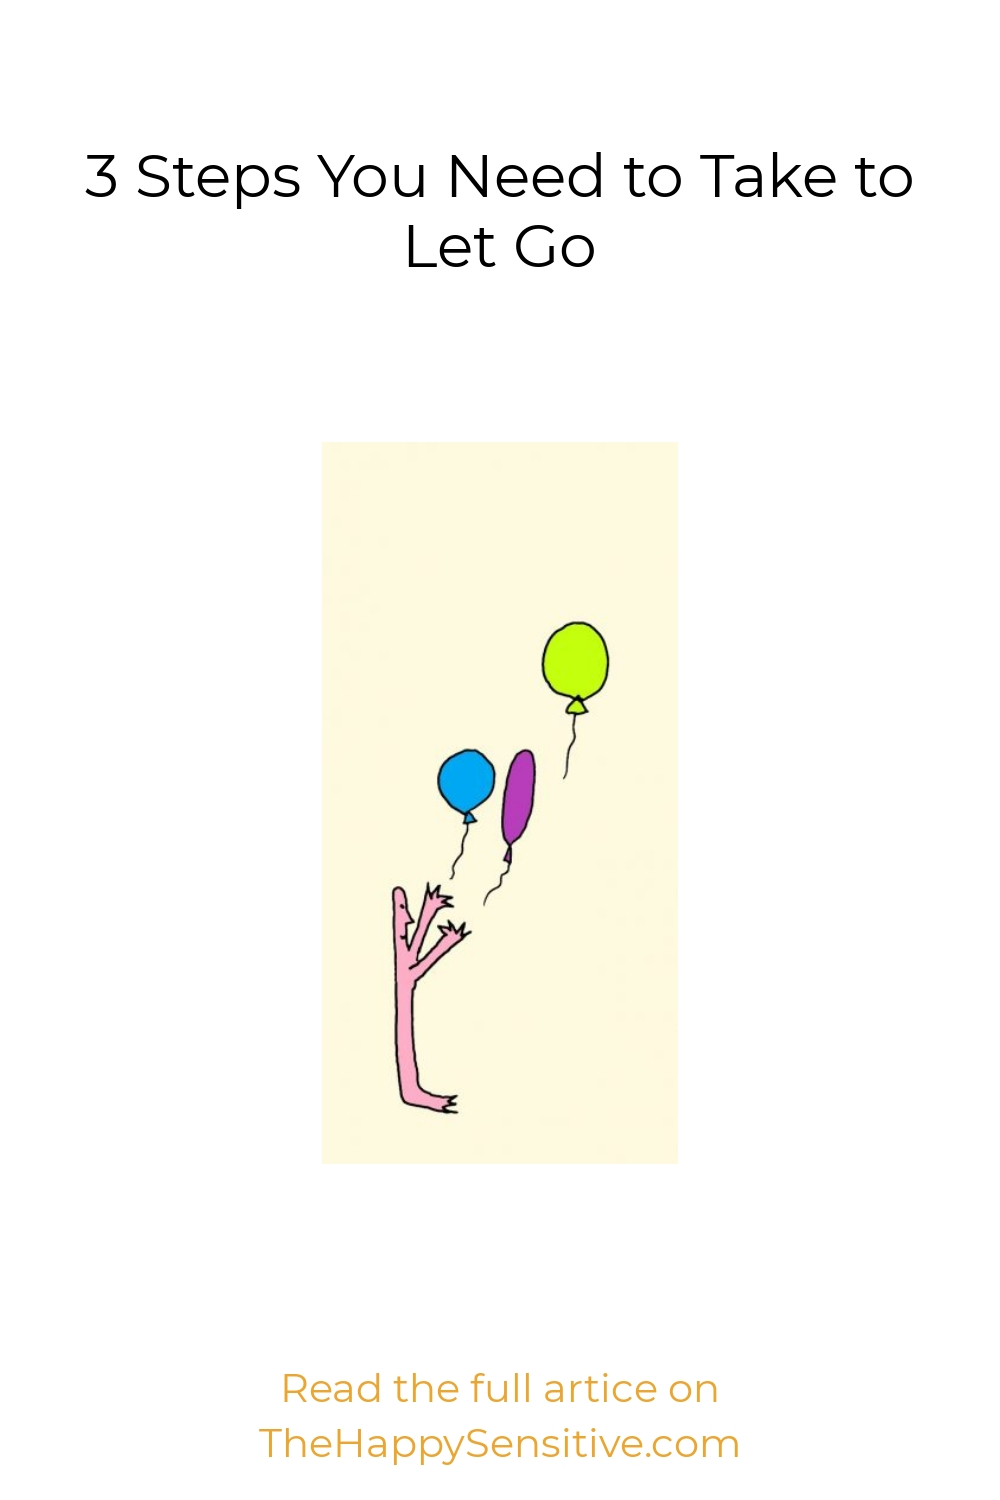 3 Steps You Need to Take to Let Go